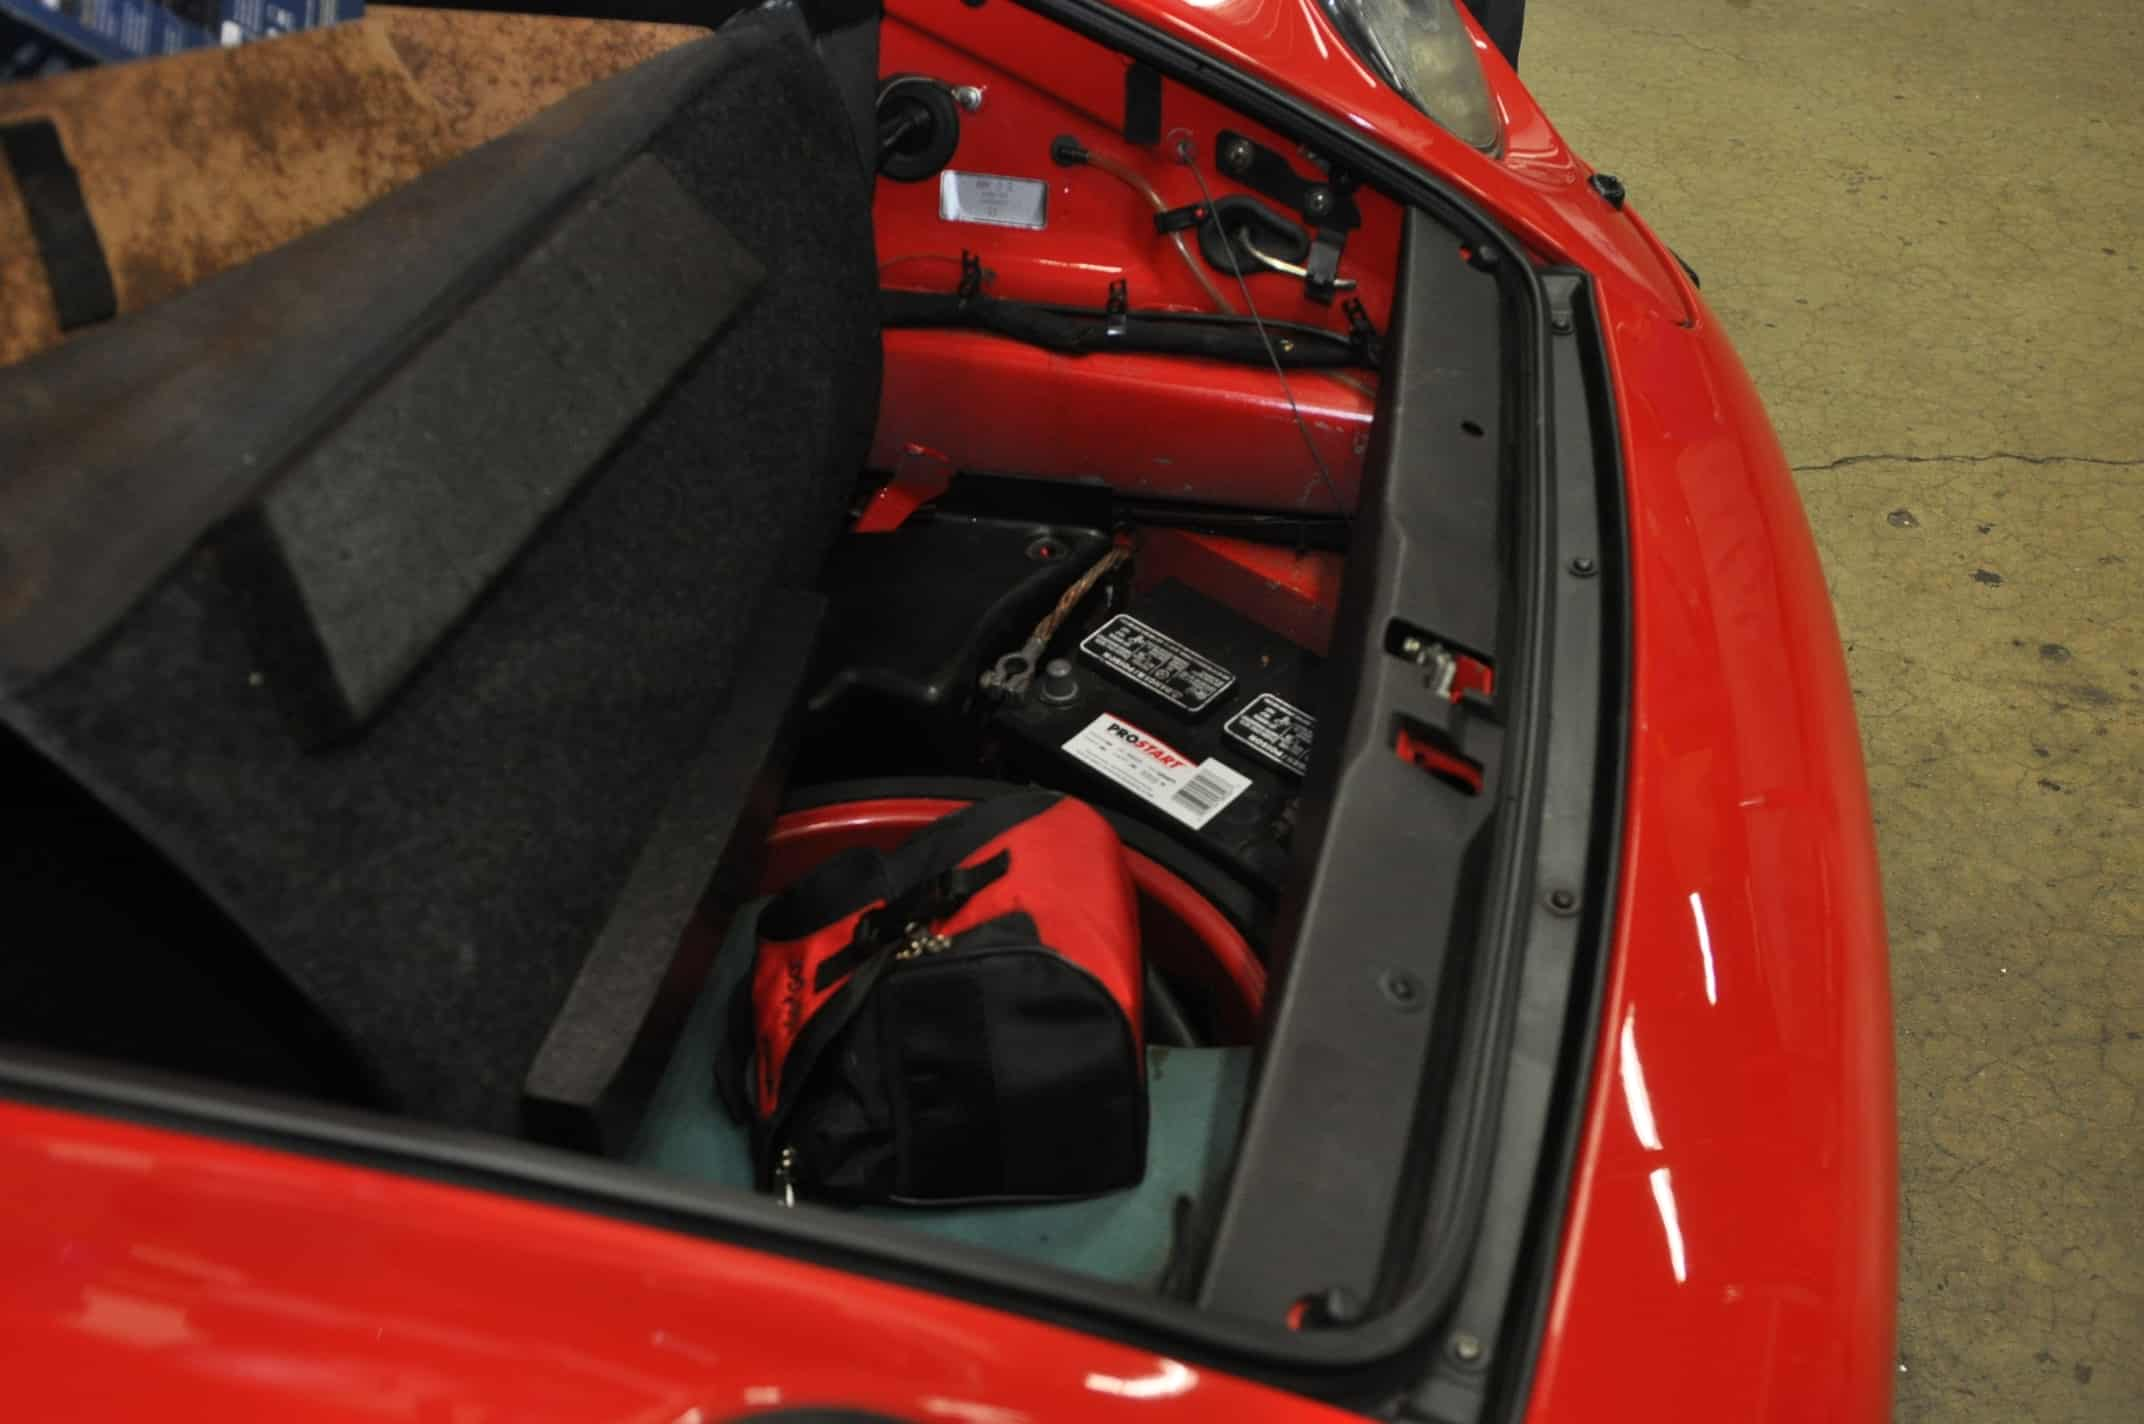 X5 E53 Battery Porsche Carrera C Cabriolet Red Automatic Transmission Battery